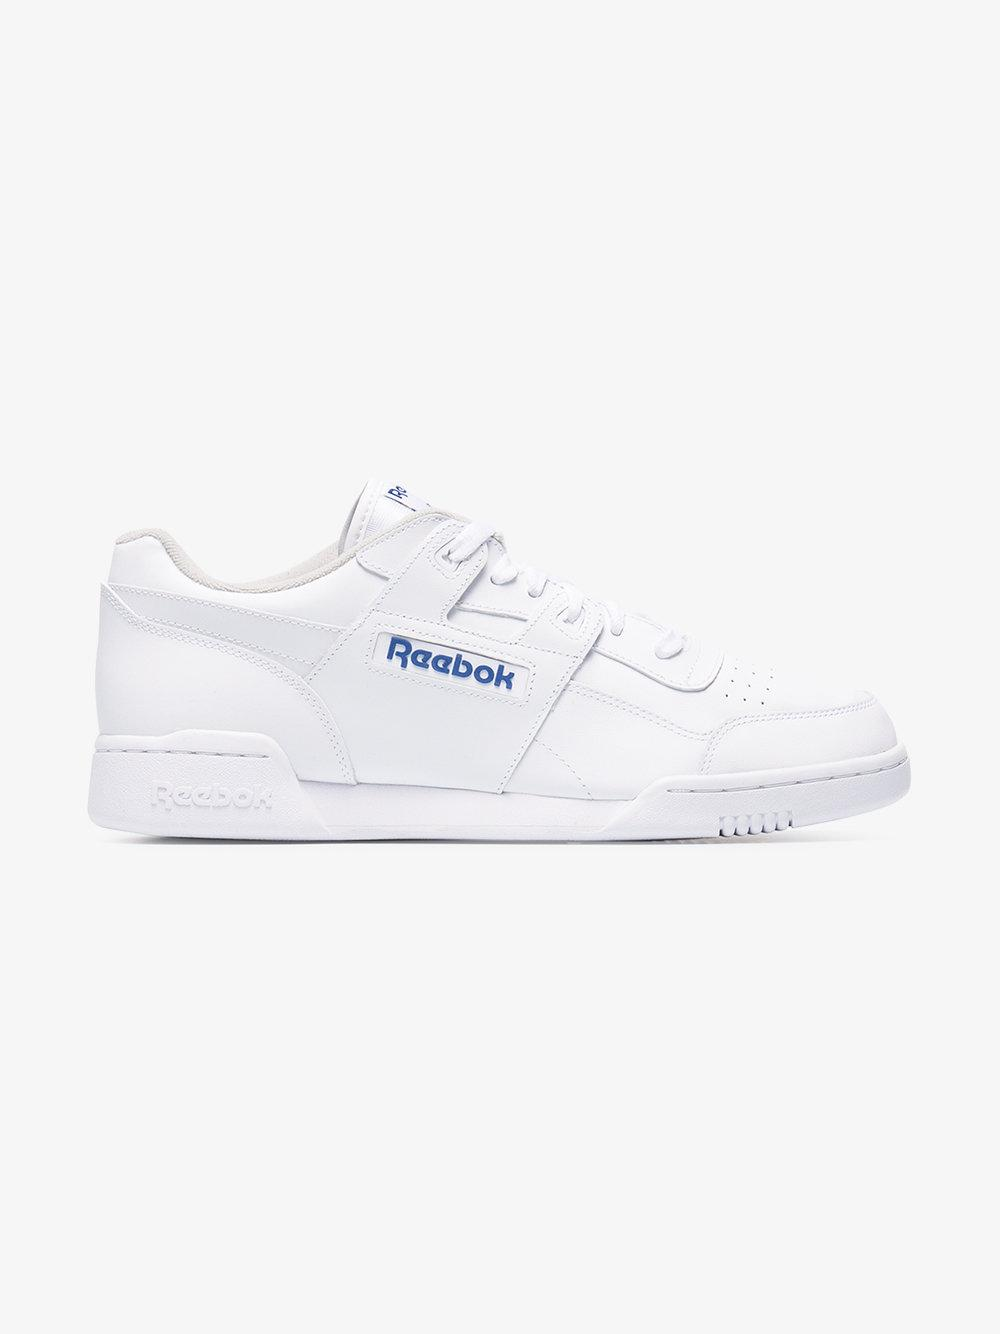 7f4c3f76a Reebok Workout Plus Low-top Sneakers in White for Men - Lyst